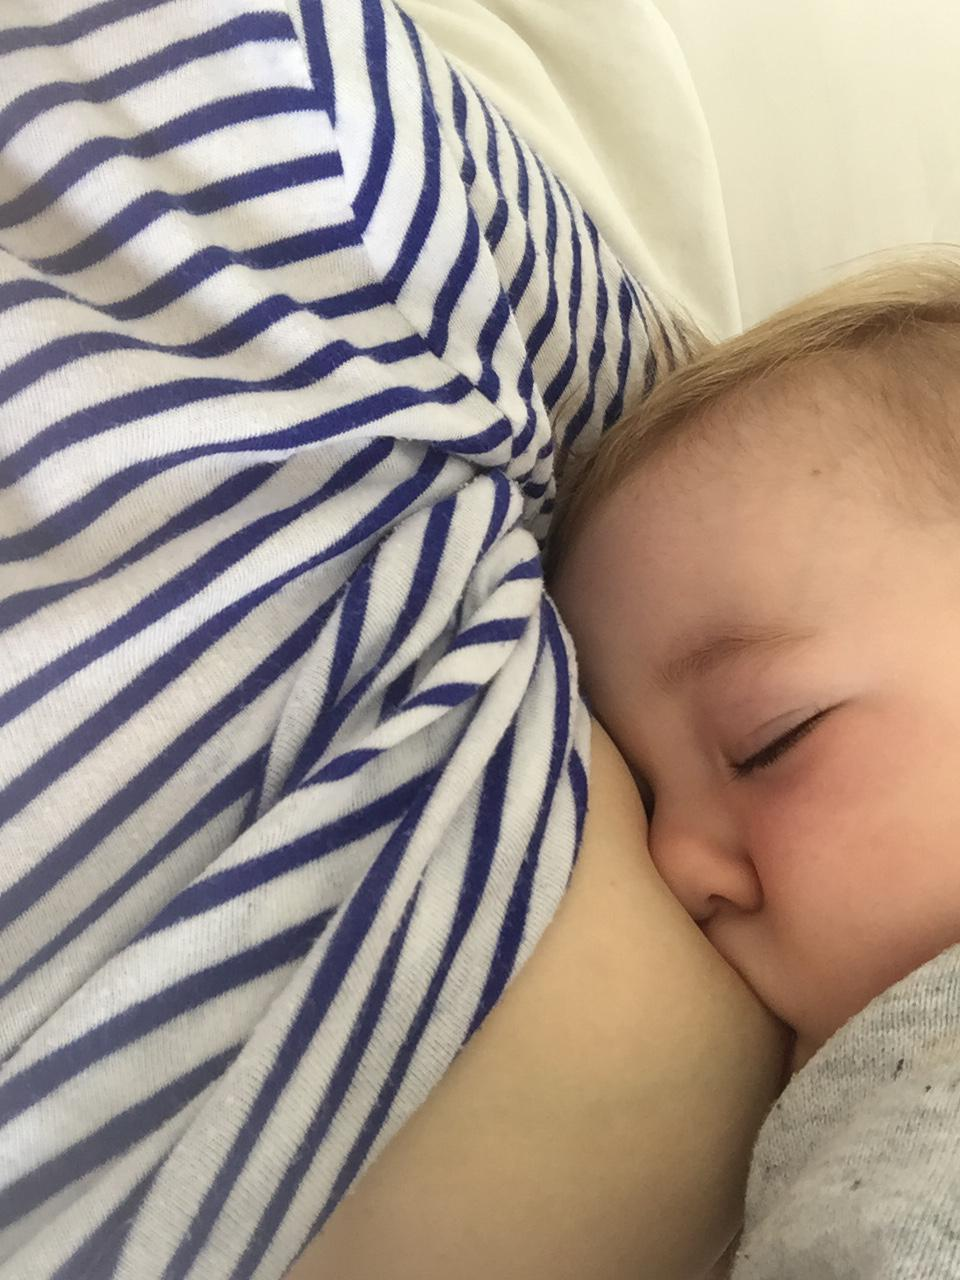 How long should a breastfeed take?